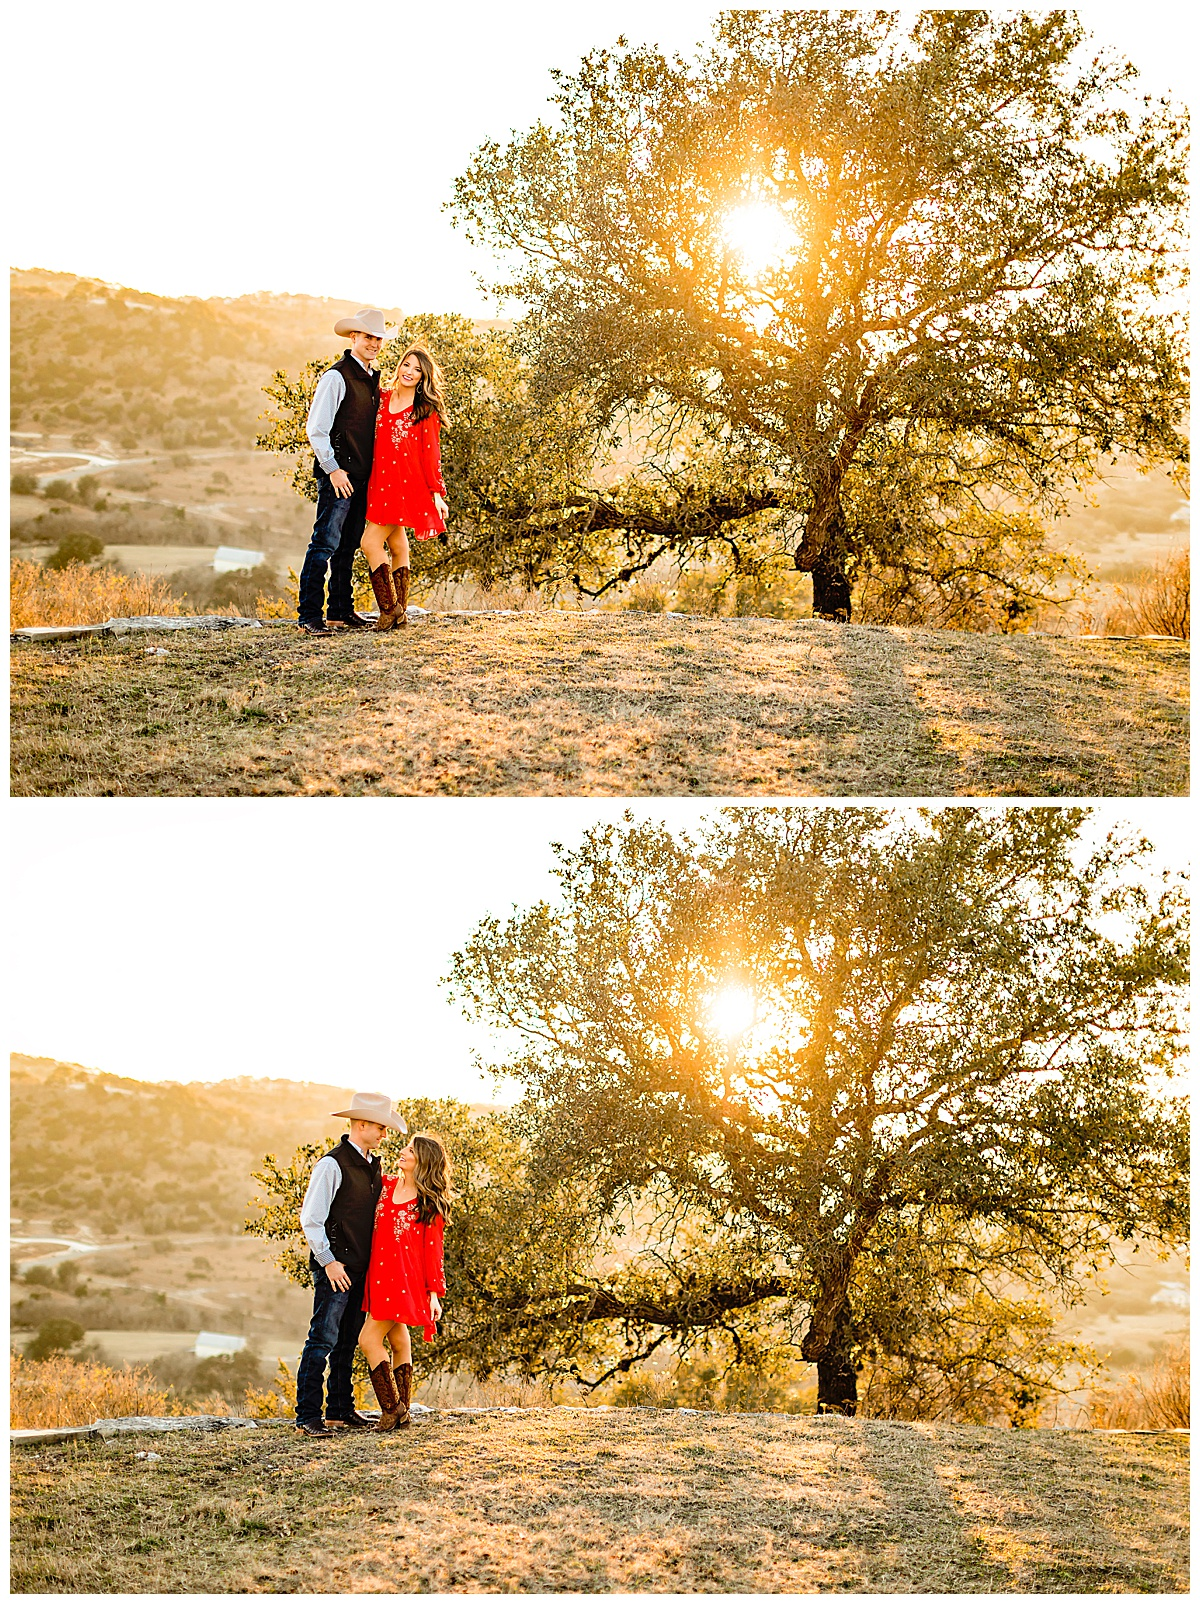 South-Texas-Wedding-Photographer-Engagement-Photos-Happy-H-Ranch-Comfort-Texas-Sunset-Couples-Carly-Barton-Photography-Justin-Erica_0009.jpg